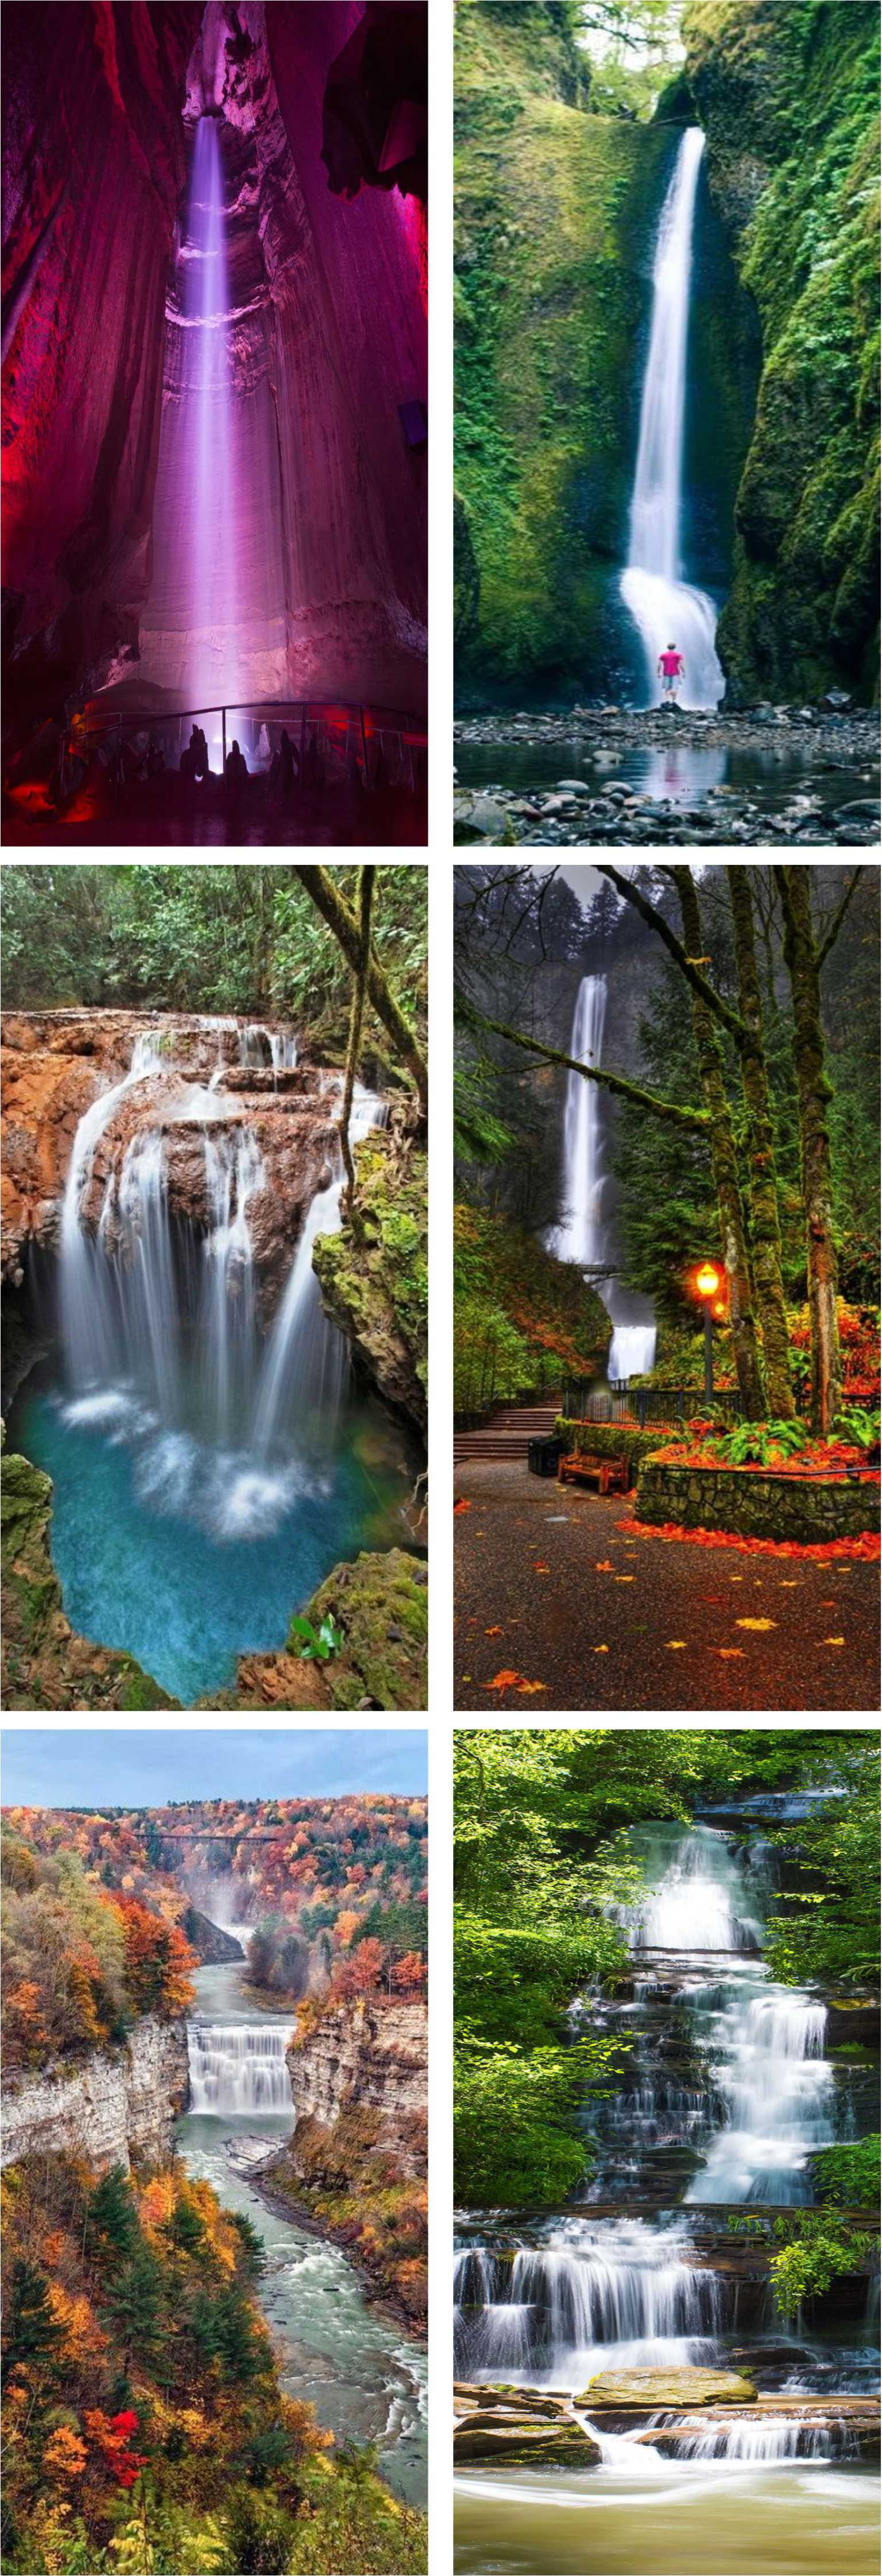 Best usa waterfalls to visit this holiday for all